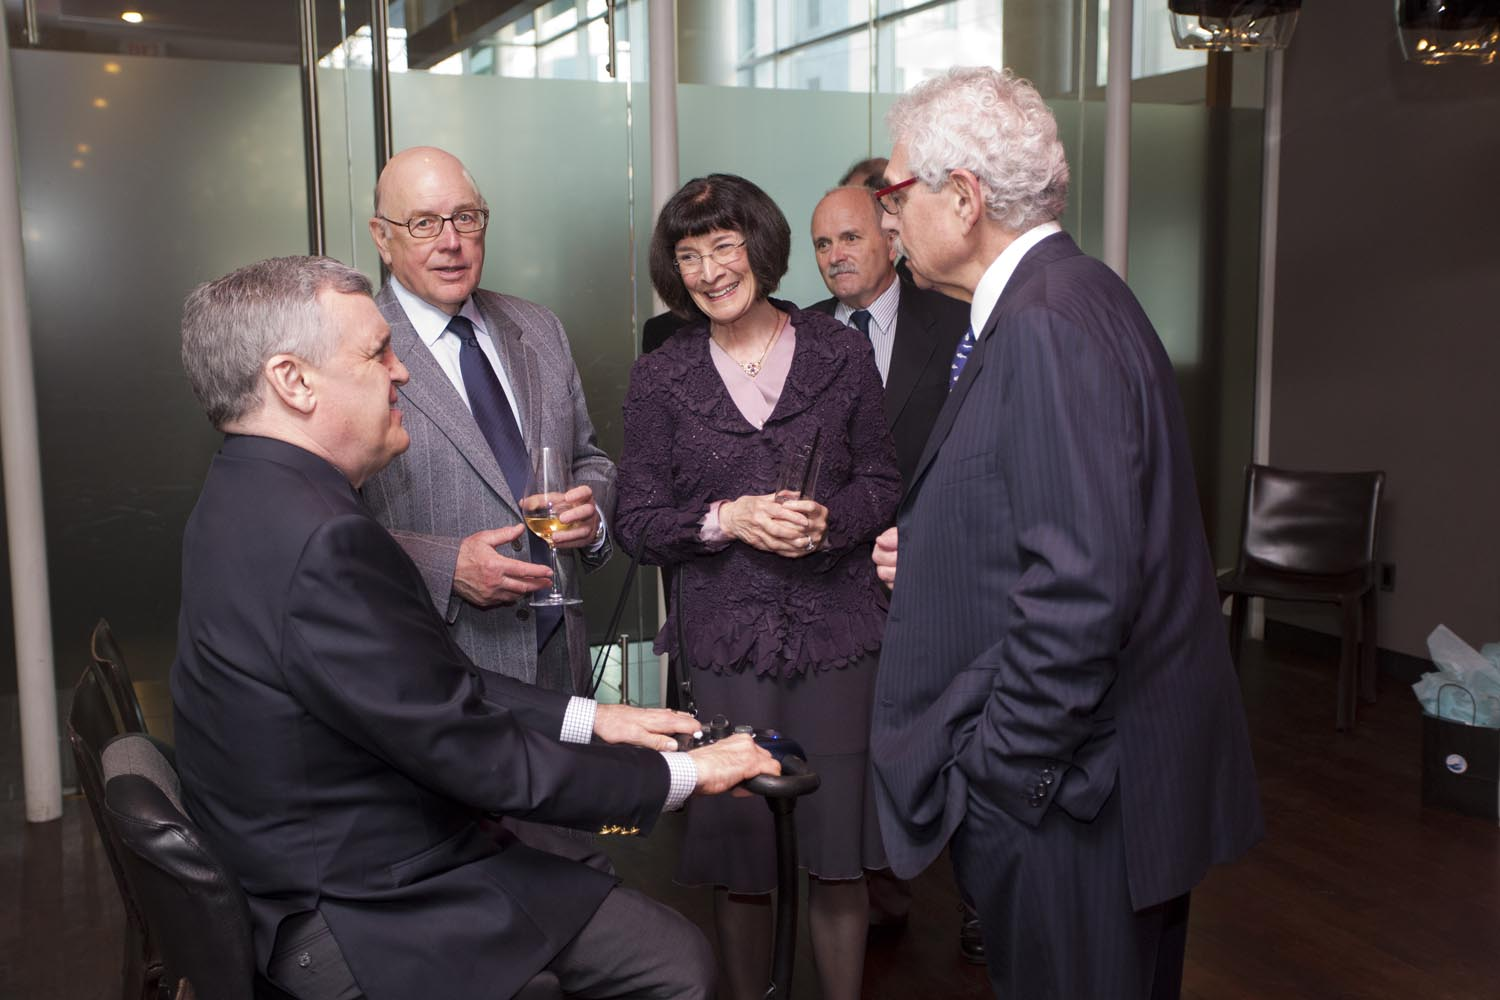 The Honourable David Onley, Lieutenant Governor of Ontario, Former Chief Justice of Ontario, Warren Winkler, Mrs. Ruth Winkler, Foundation President Mr. Pat Doyle and Dr. Bernie Gosevitz